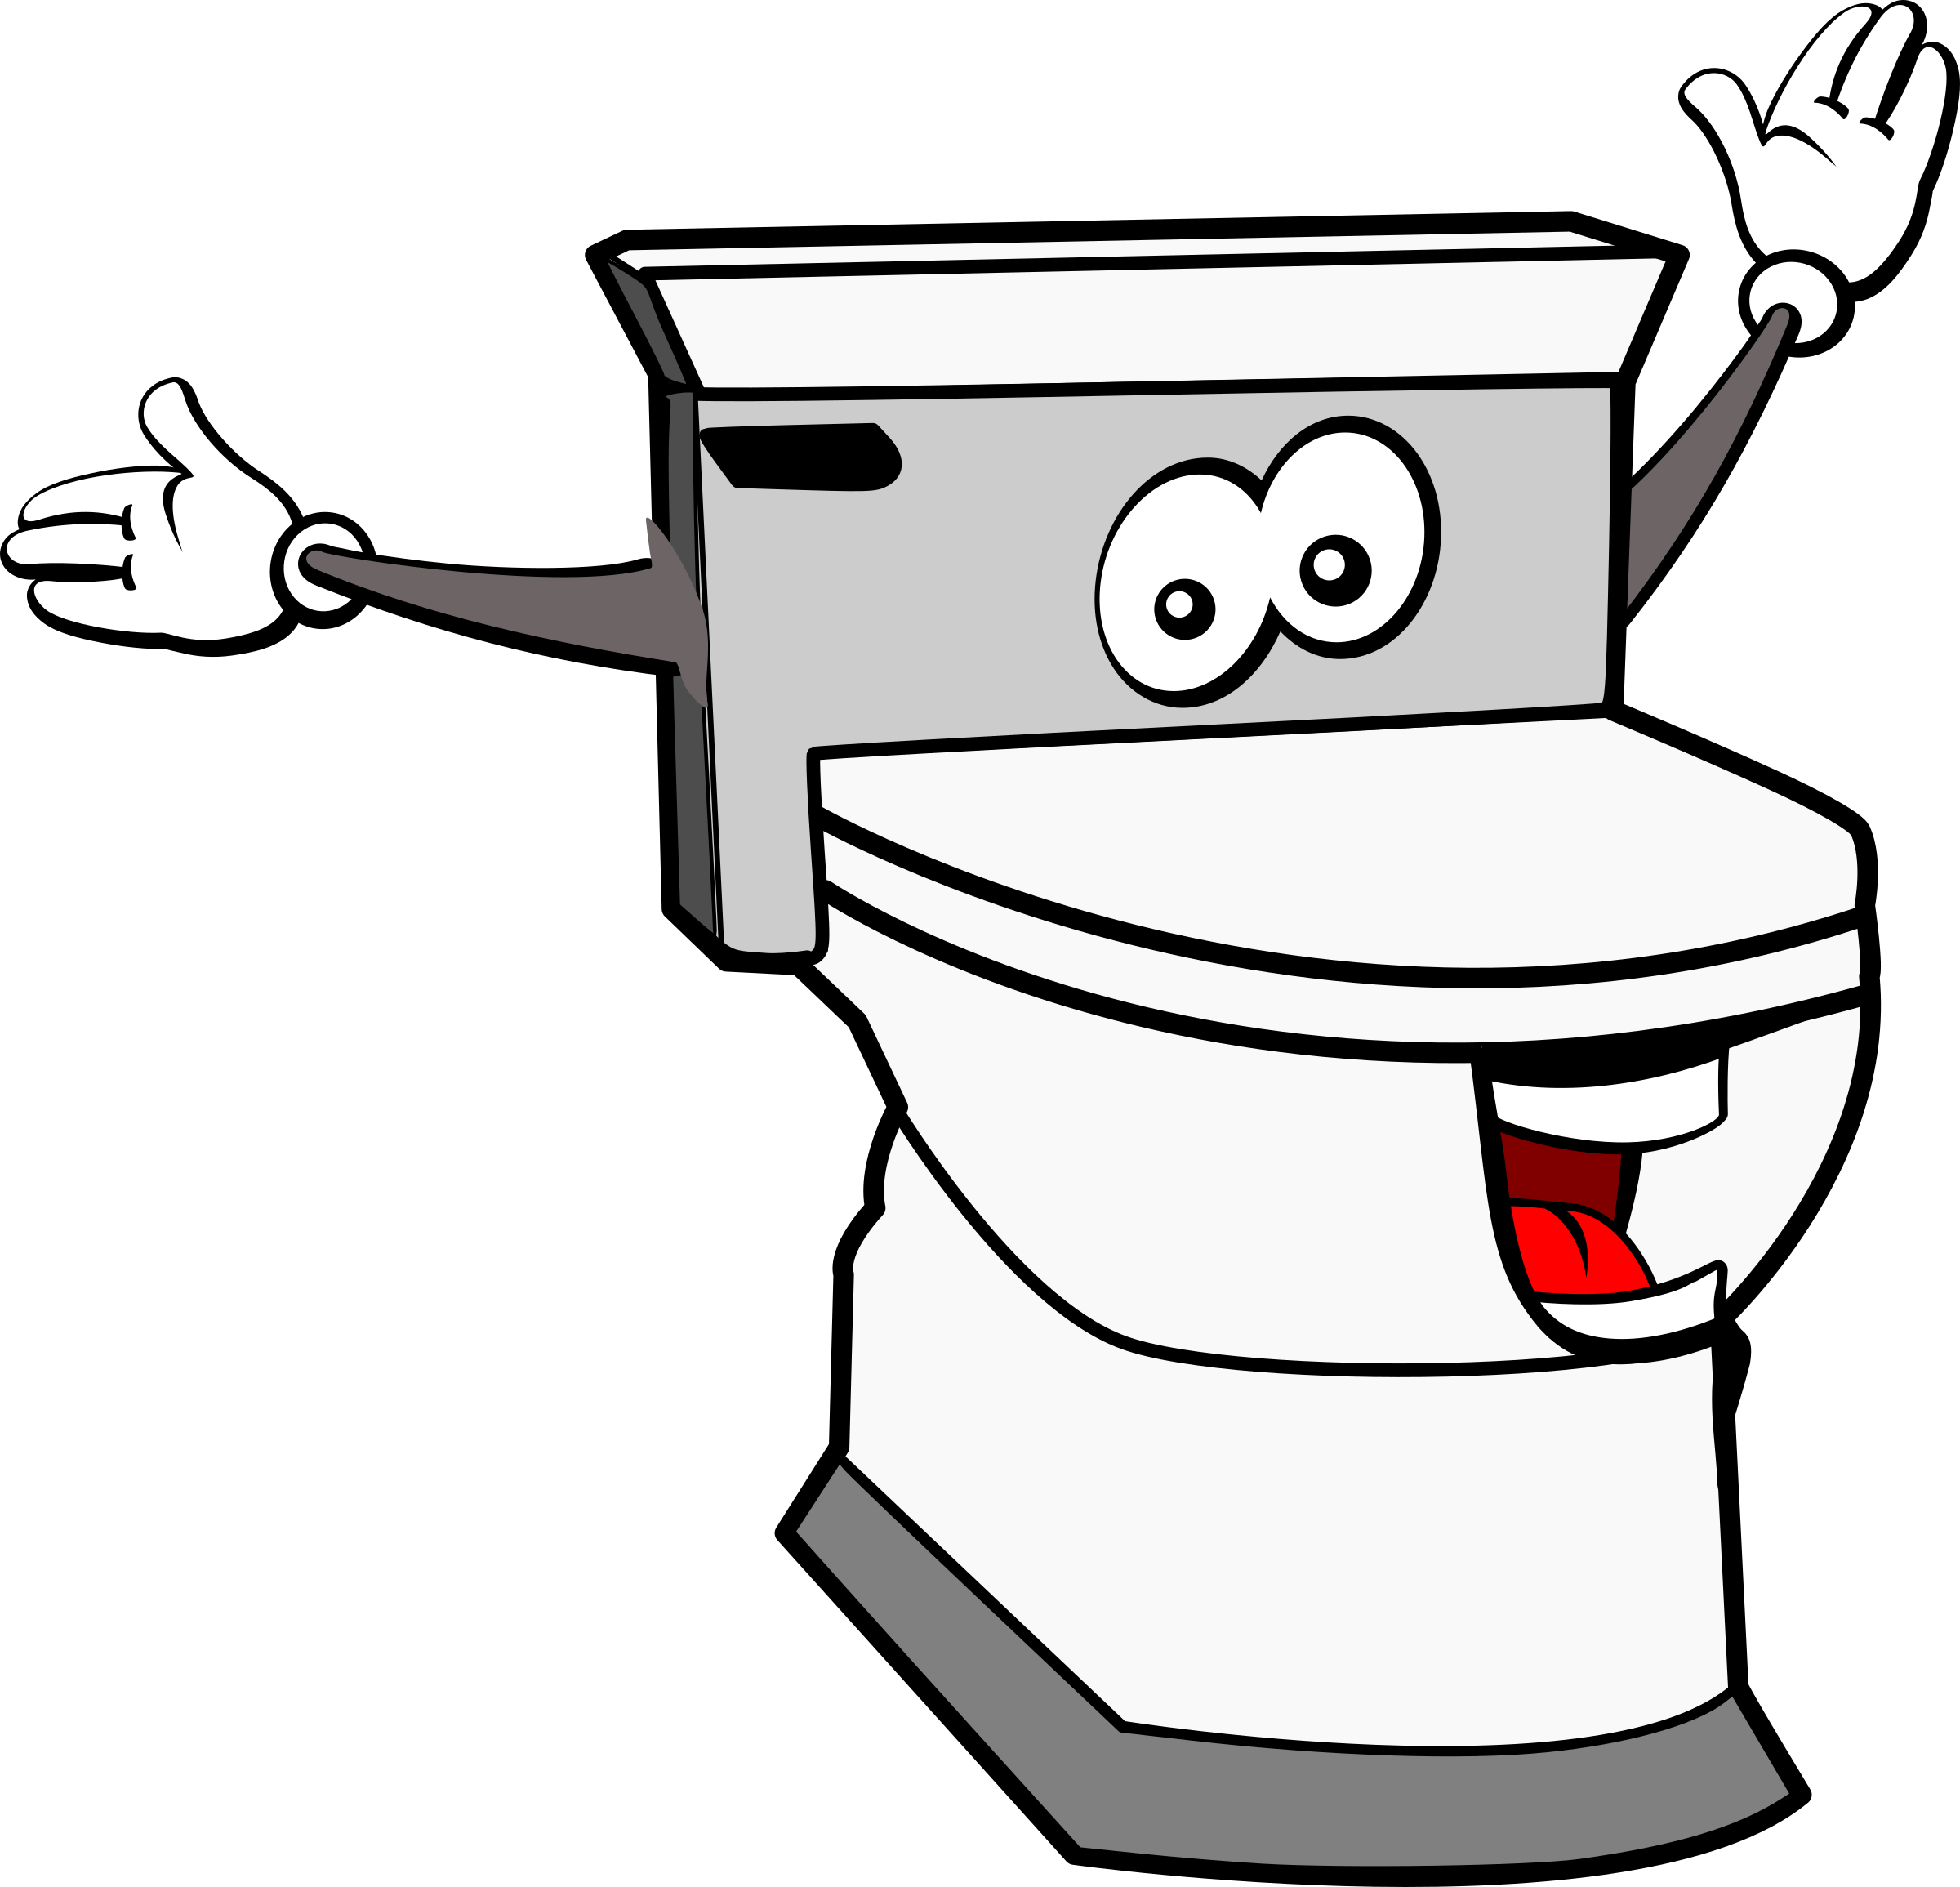 Furniture clipart toilet. Kawaii big image png